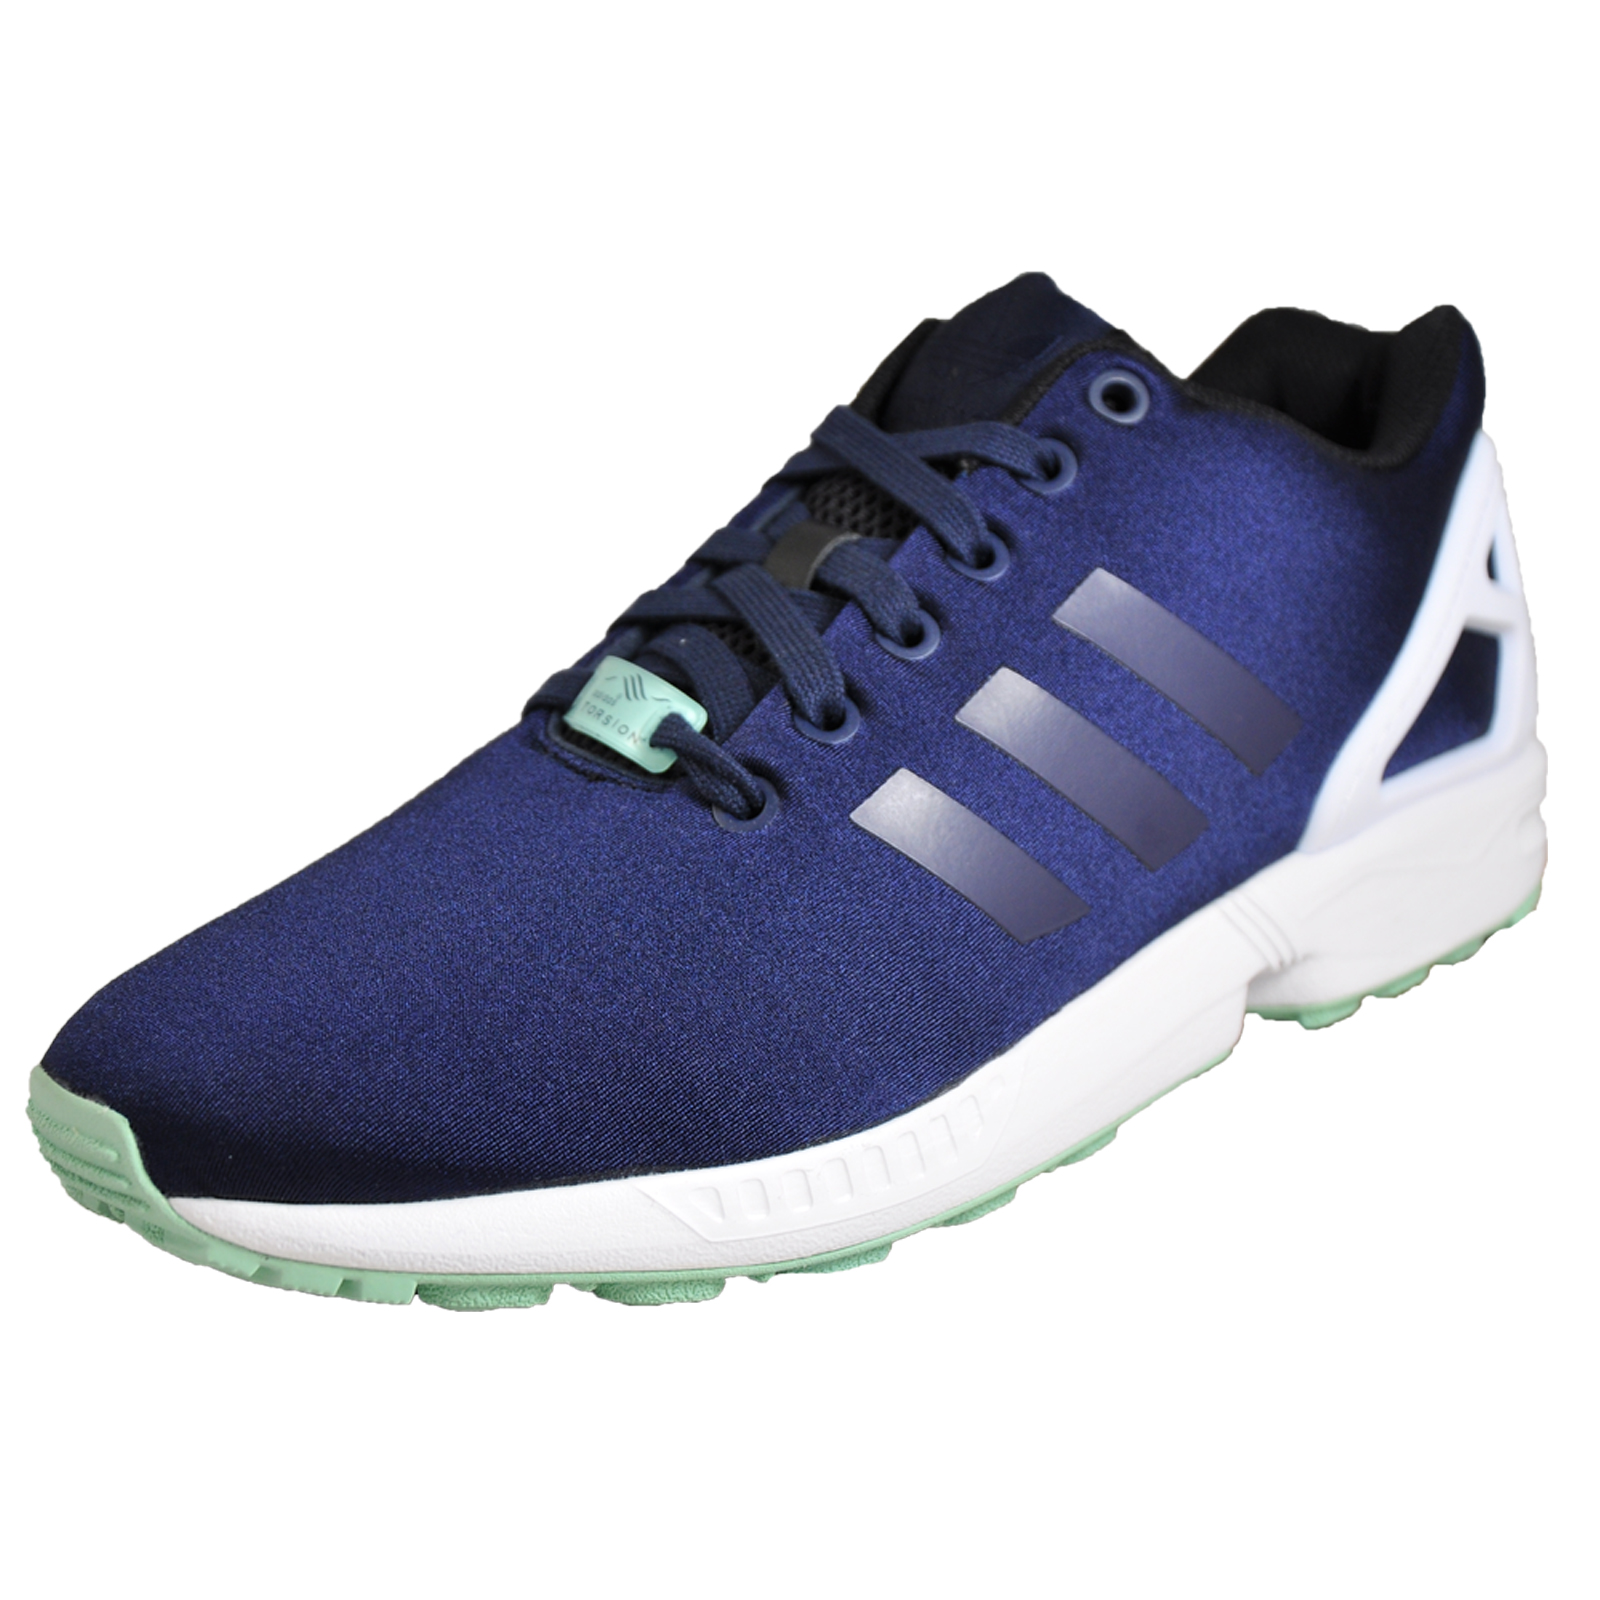 the best attitude fd481 166da Adidas Originals ZX Flux Men s Casual Retro Gym Fashion Trainers Navy